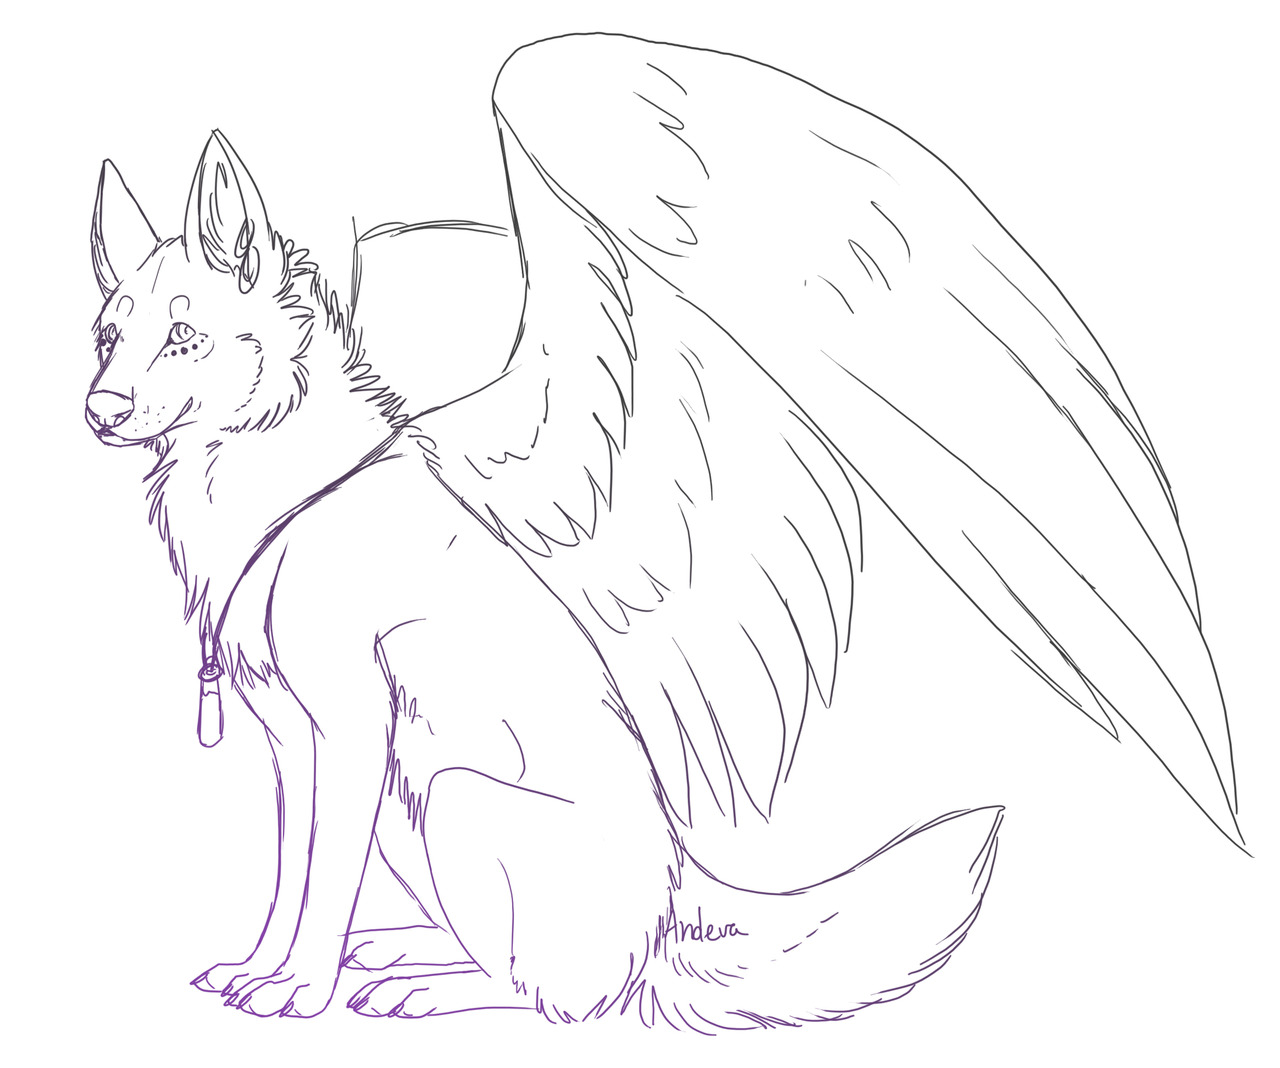 Drawn werewolf coloring page Realistic Realistic wolves scary Angel